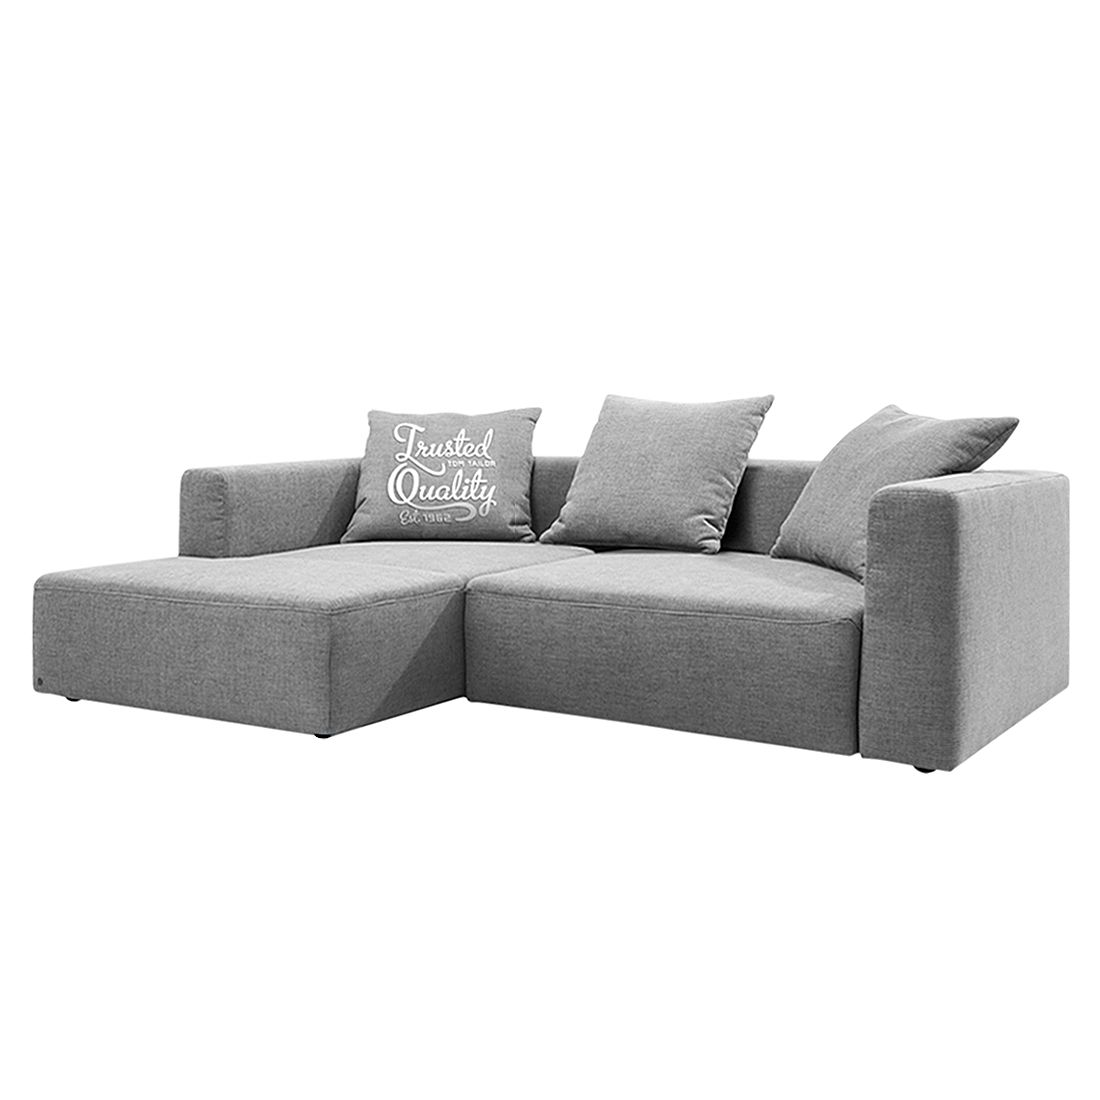 home24 Tom Tailor Ecksofa Heaven Casual Hellgrau Webstoff 242x66x162 cm mit Schlaffunktion